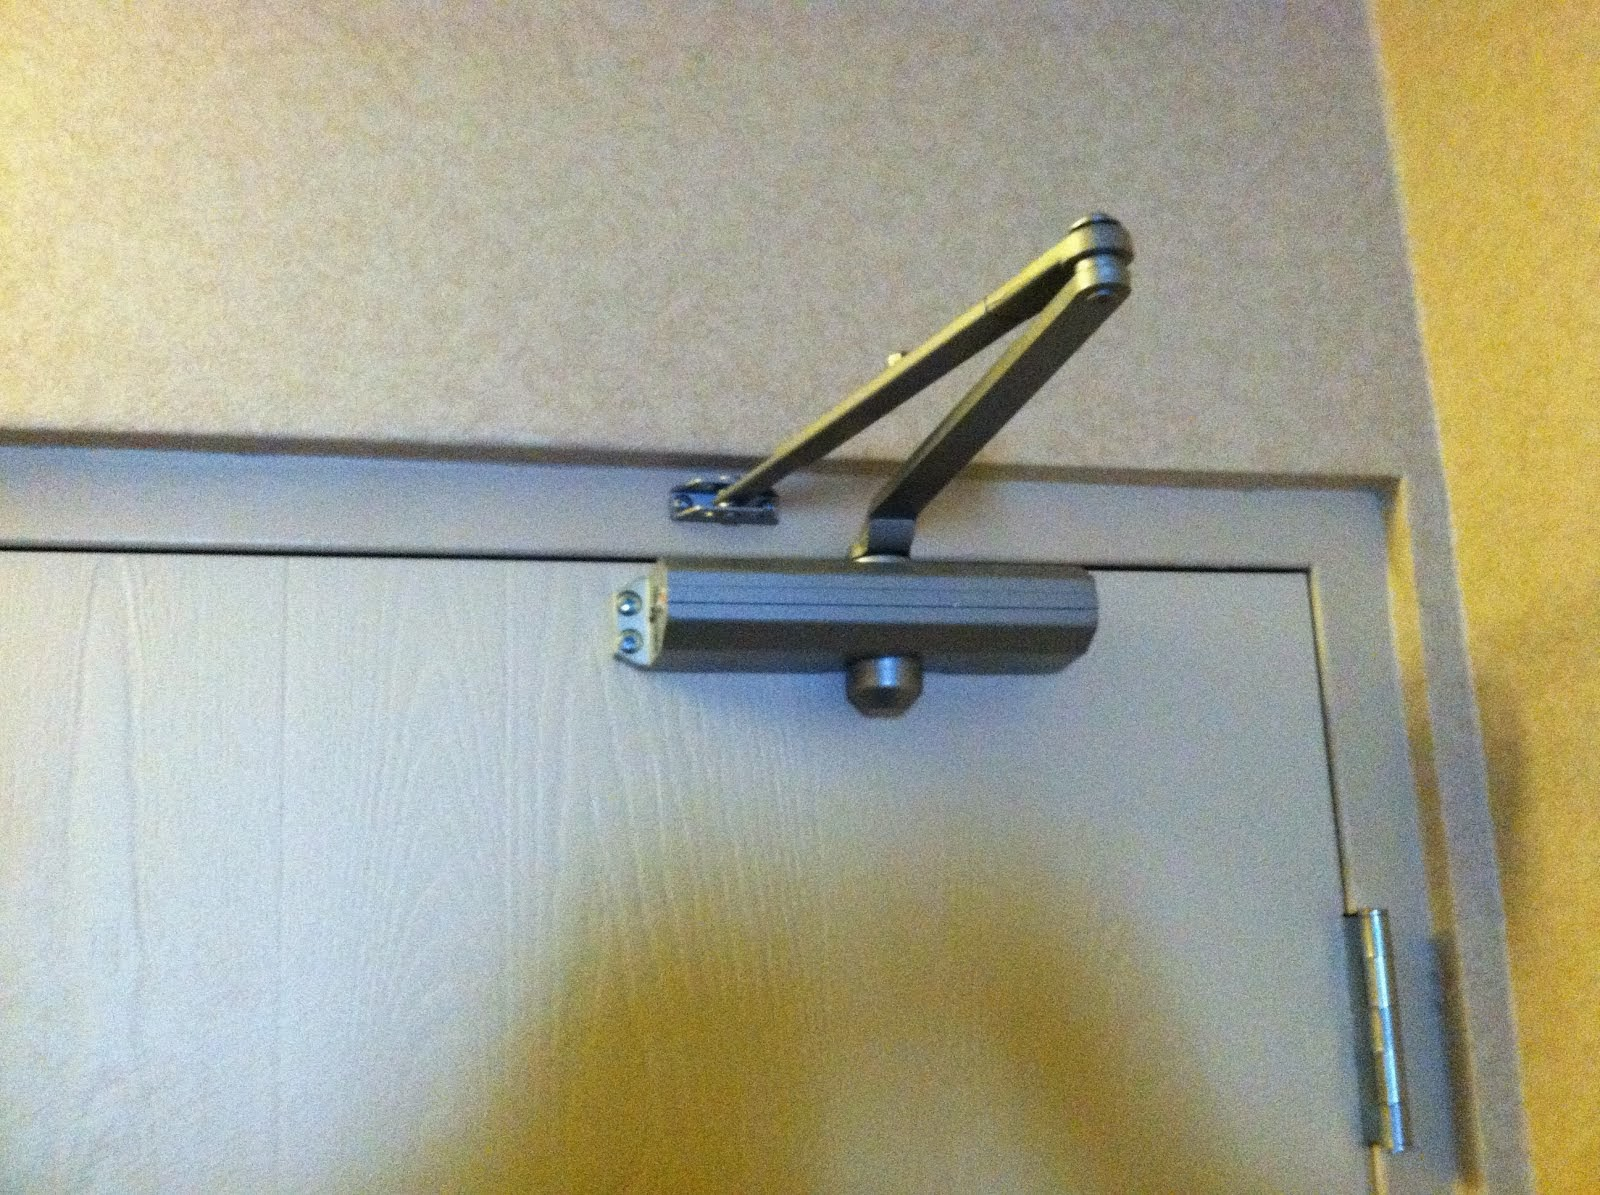 Choosing Door Closer And Curtain Brackets From Interior Hardware Manufacturers